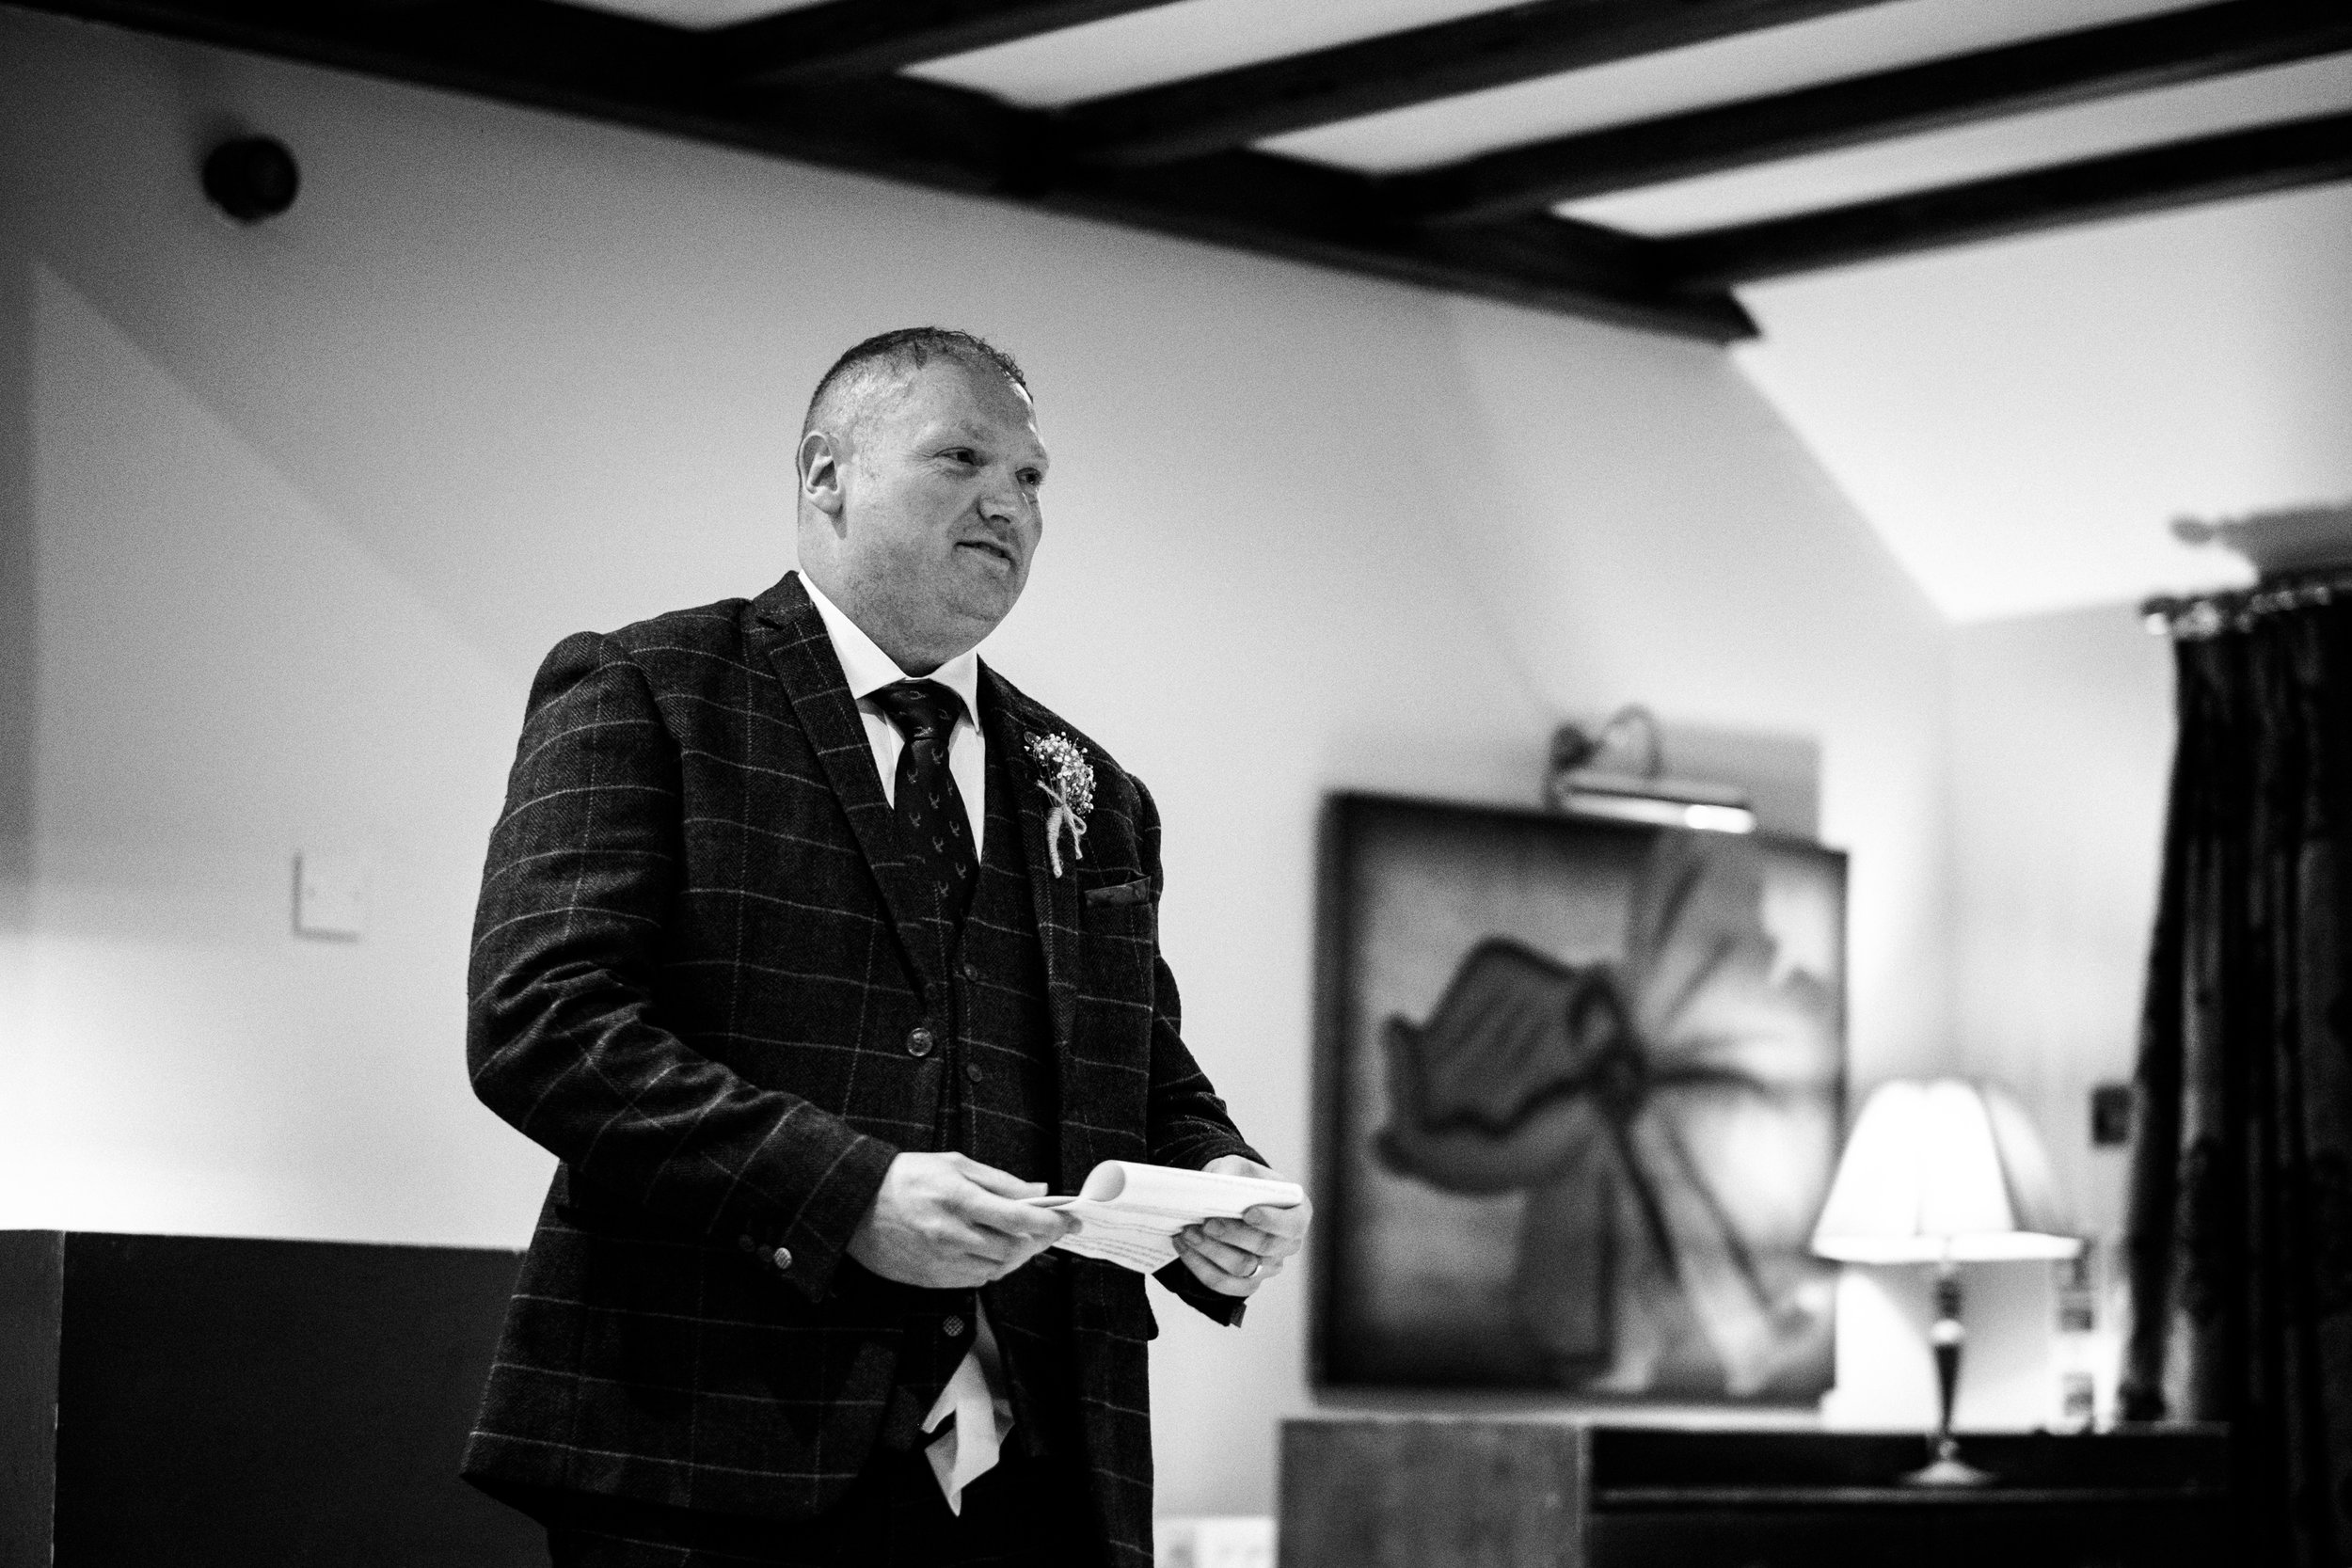 Autumn Wedding Photography at The Three Horseshoes, Blackshaw Moor, Staffordshire Moorlands - Jenny Harper-48.jpg